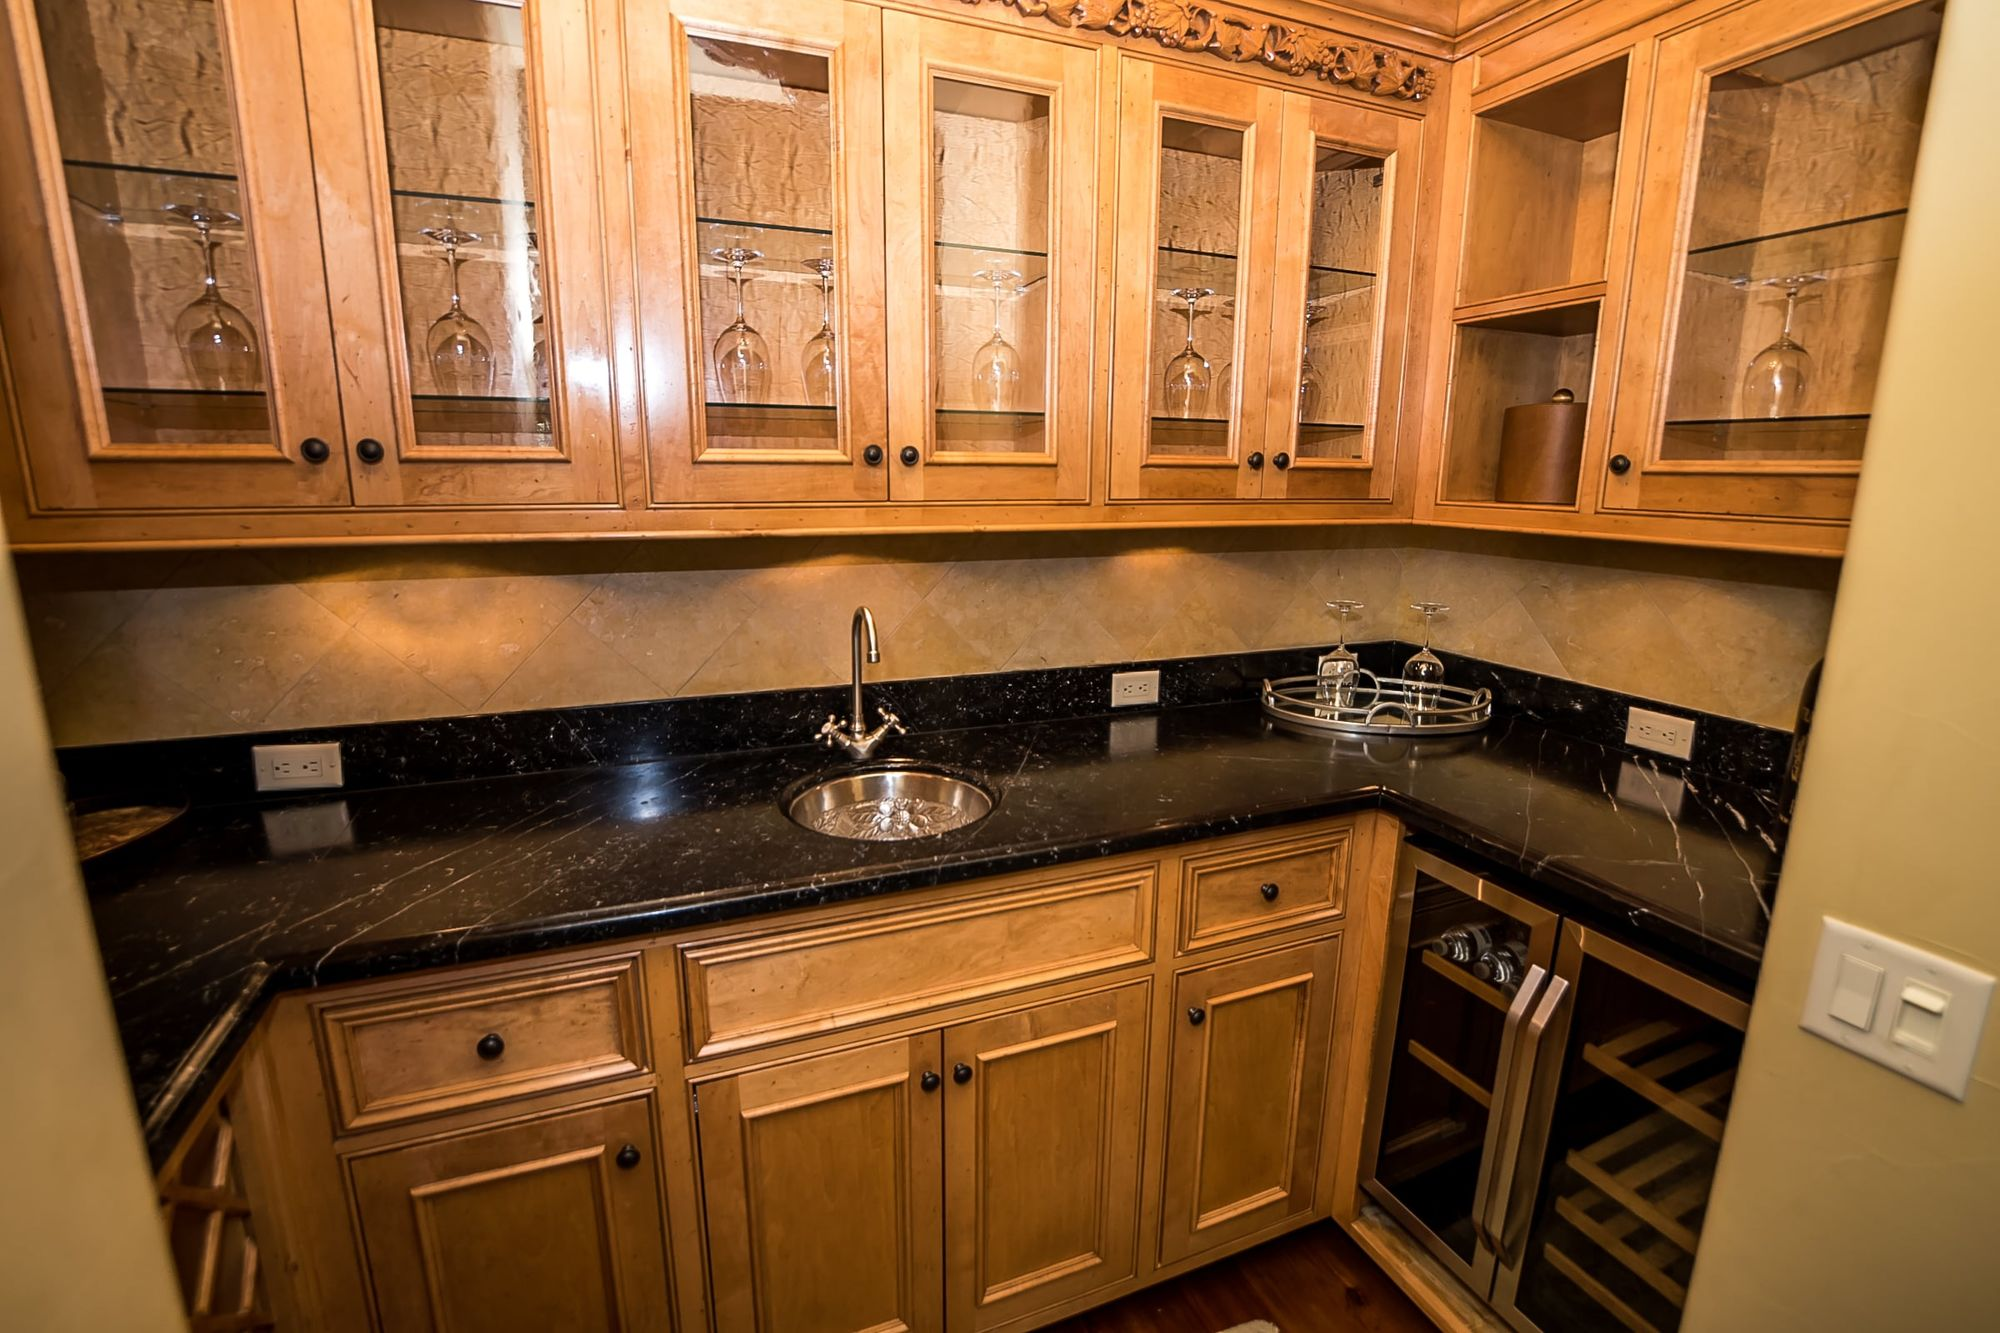 Large wet bar with sink, wine fridge, and glasses in cabinets above